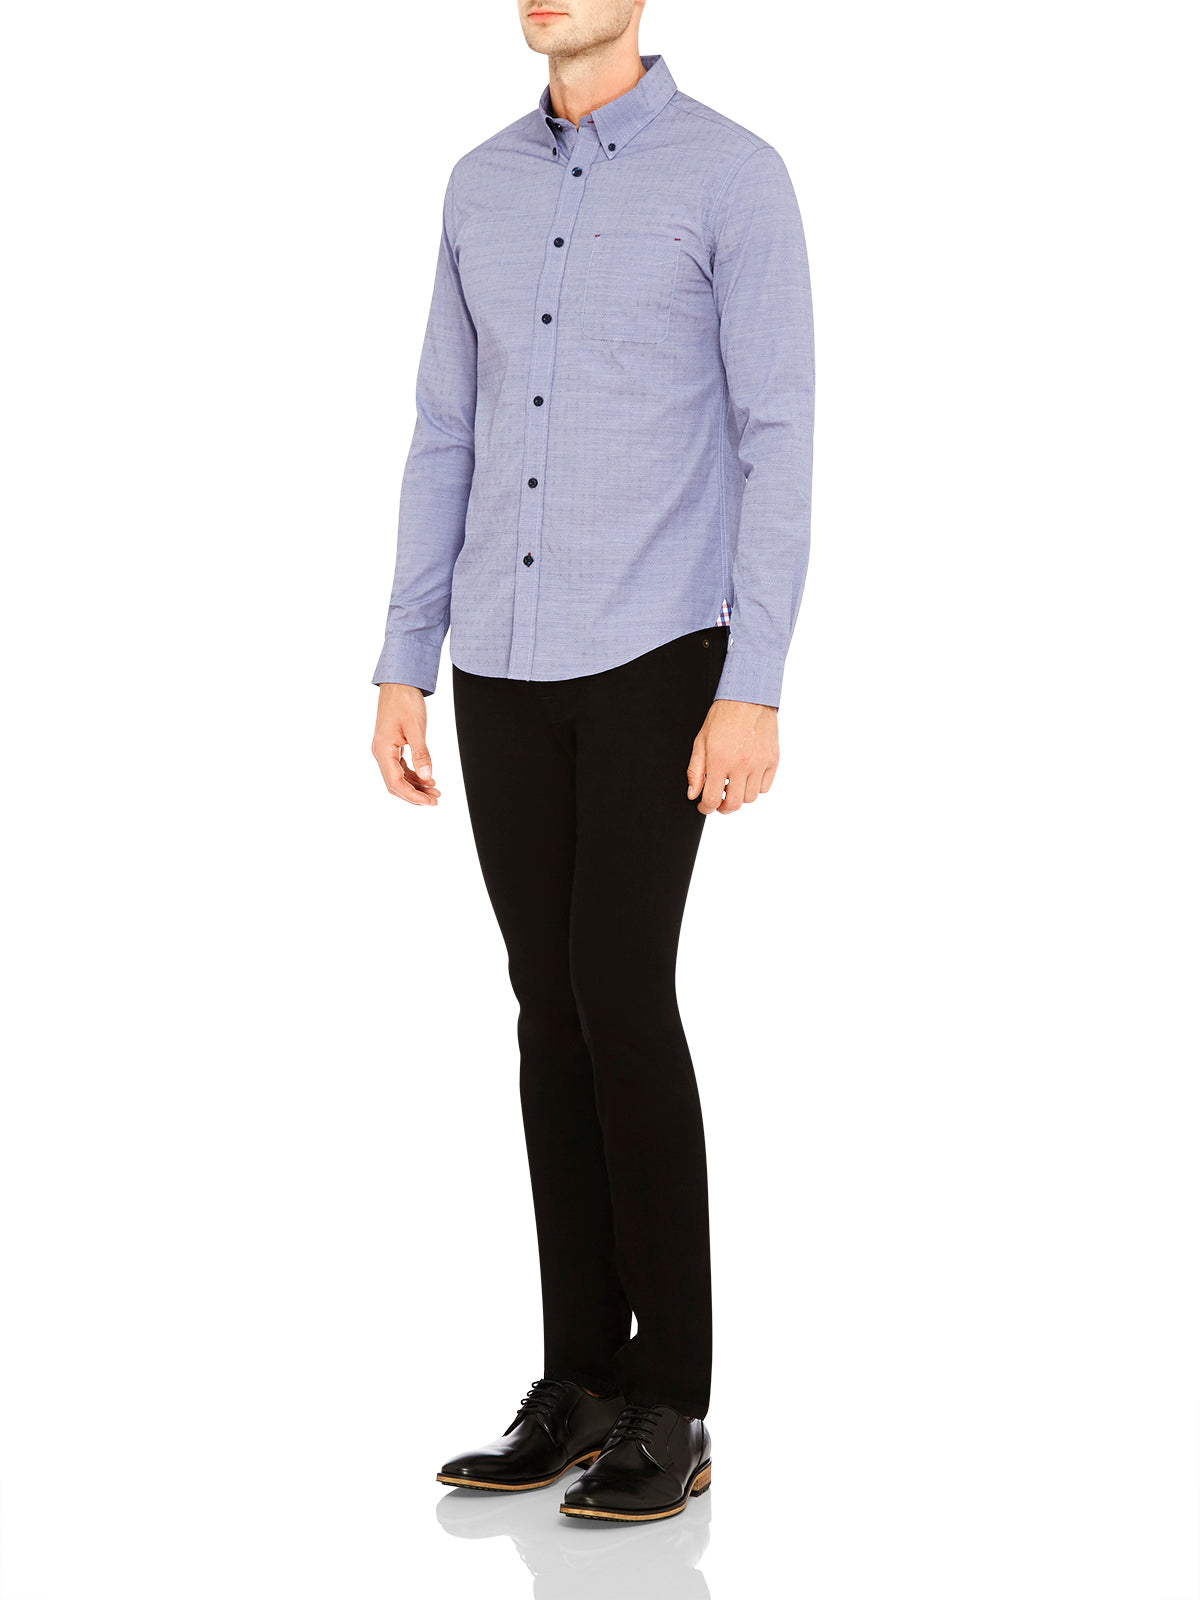 UXBRIDGE SHIRT INDIGO